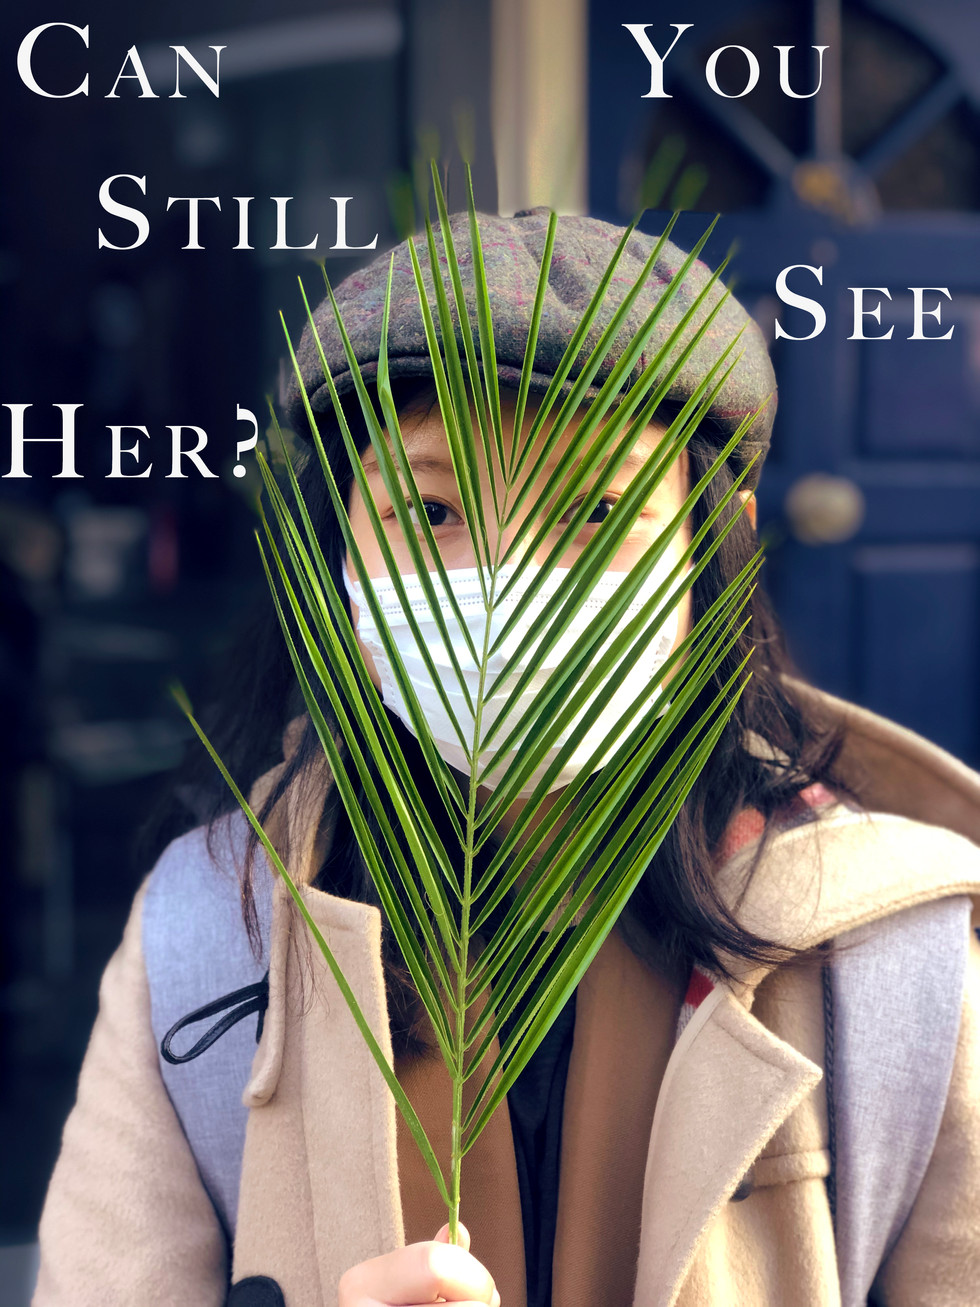 Can You Still See Her?